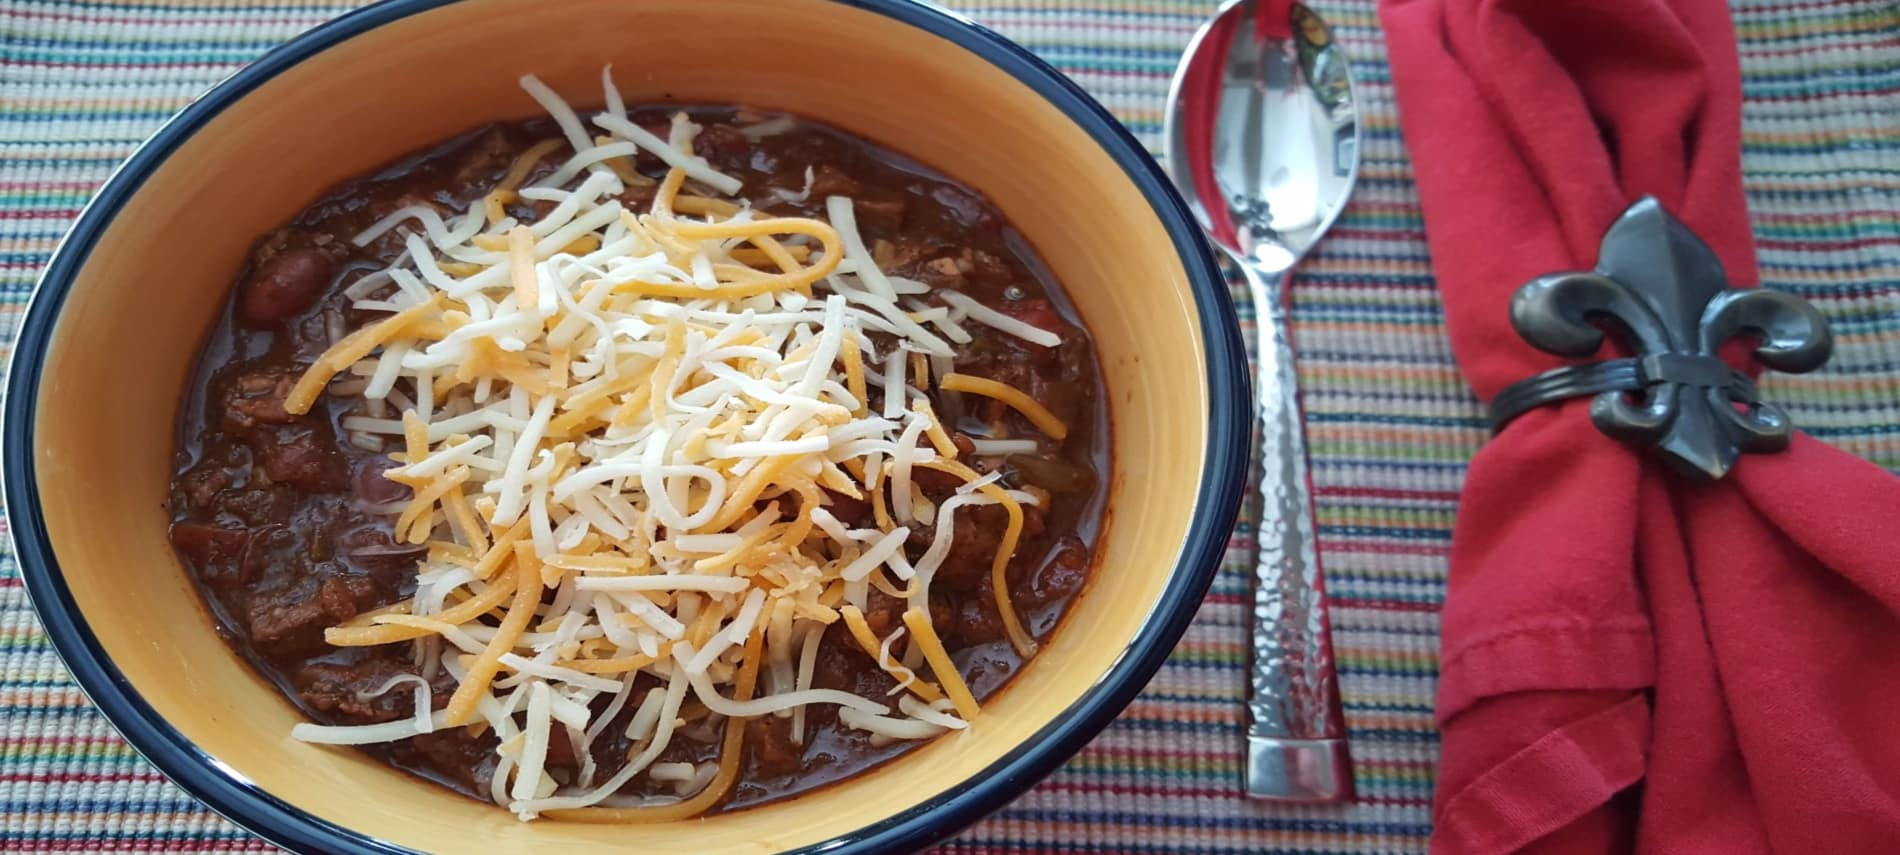 yellow and blue bowl of chili with grated cheddar and jack cheese with spoon and red napkin with fleur de lis napkin holder